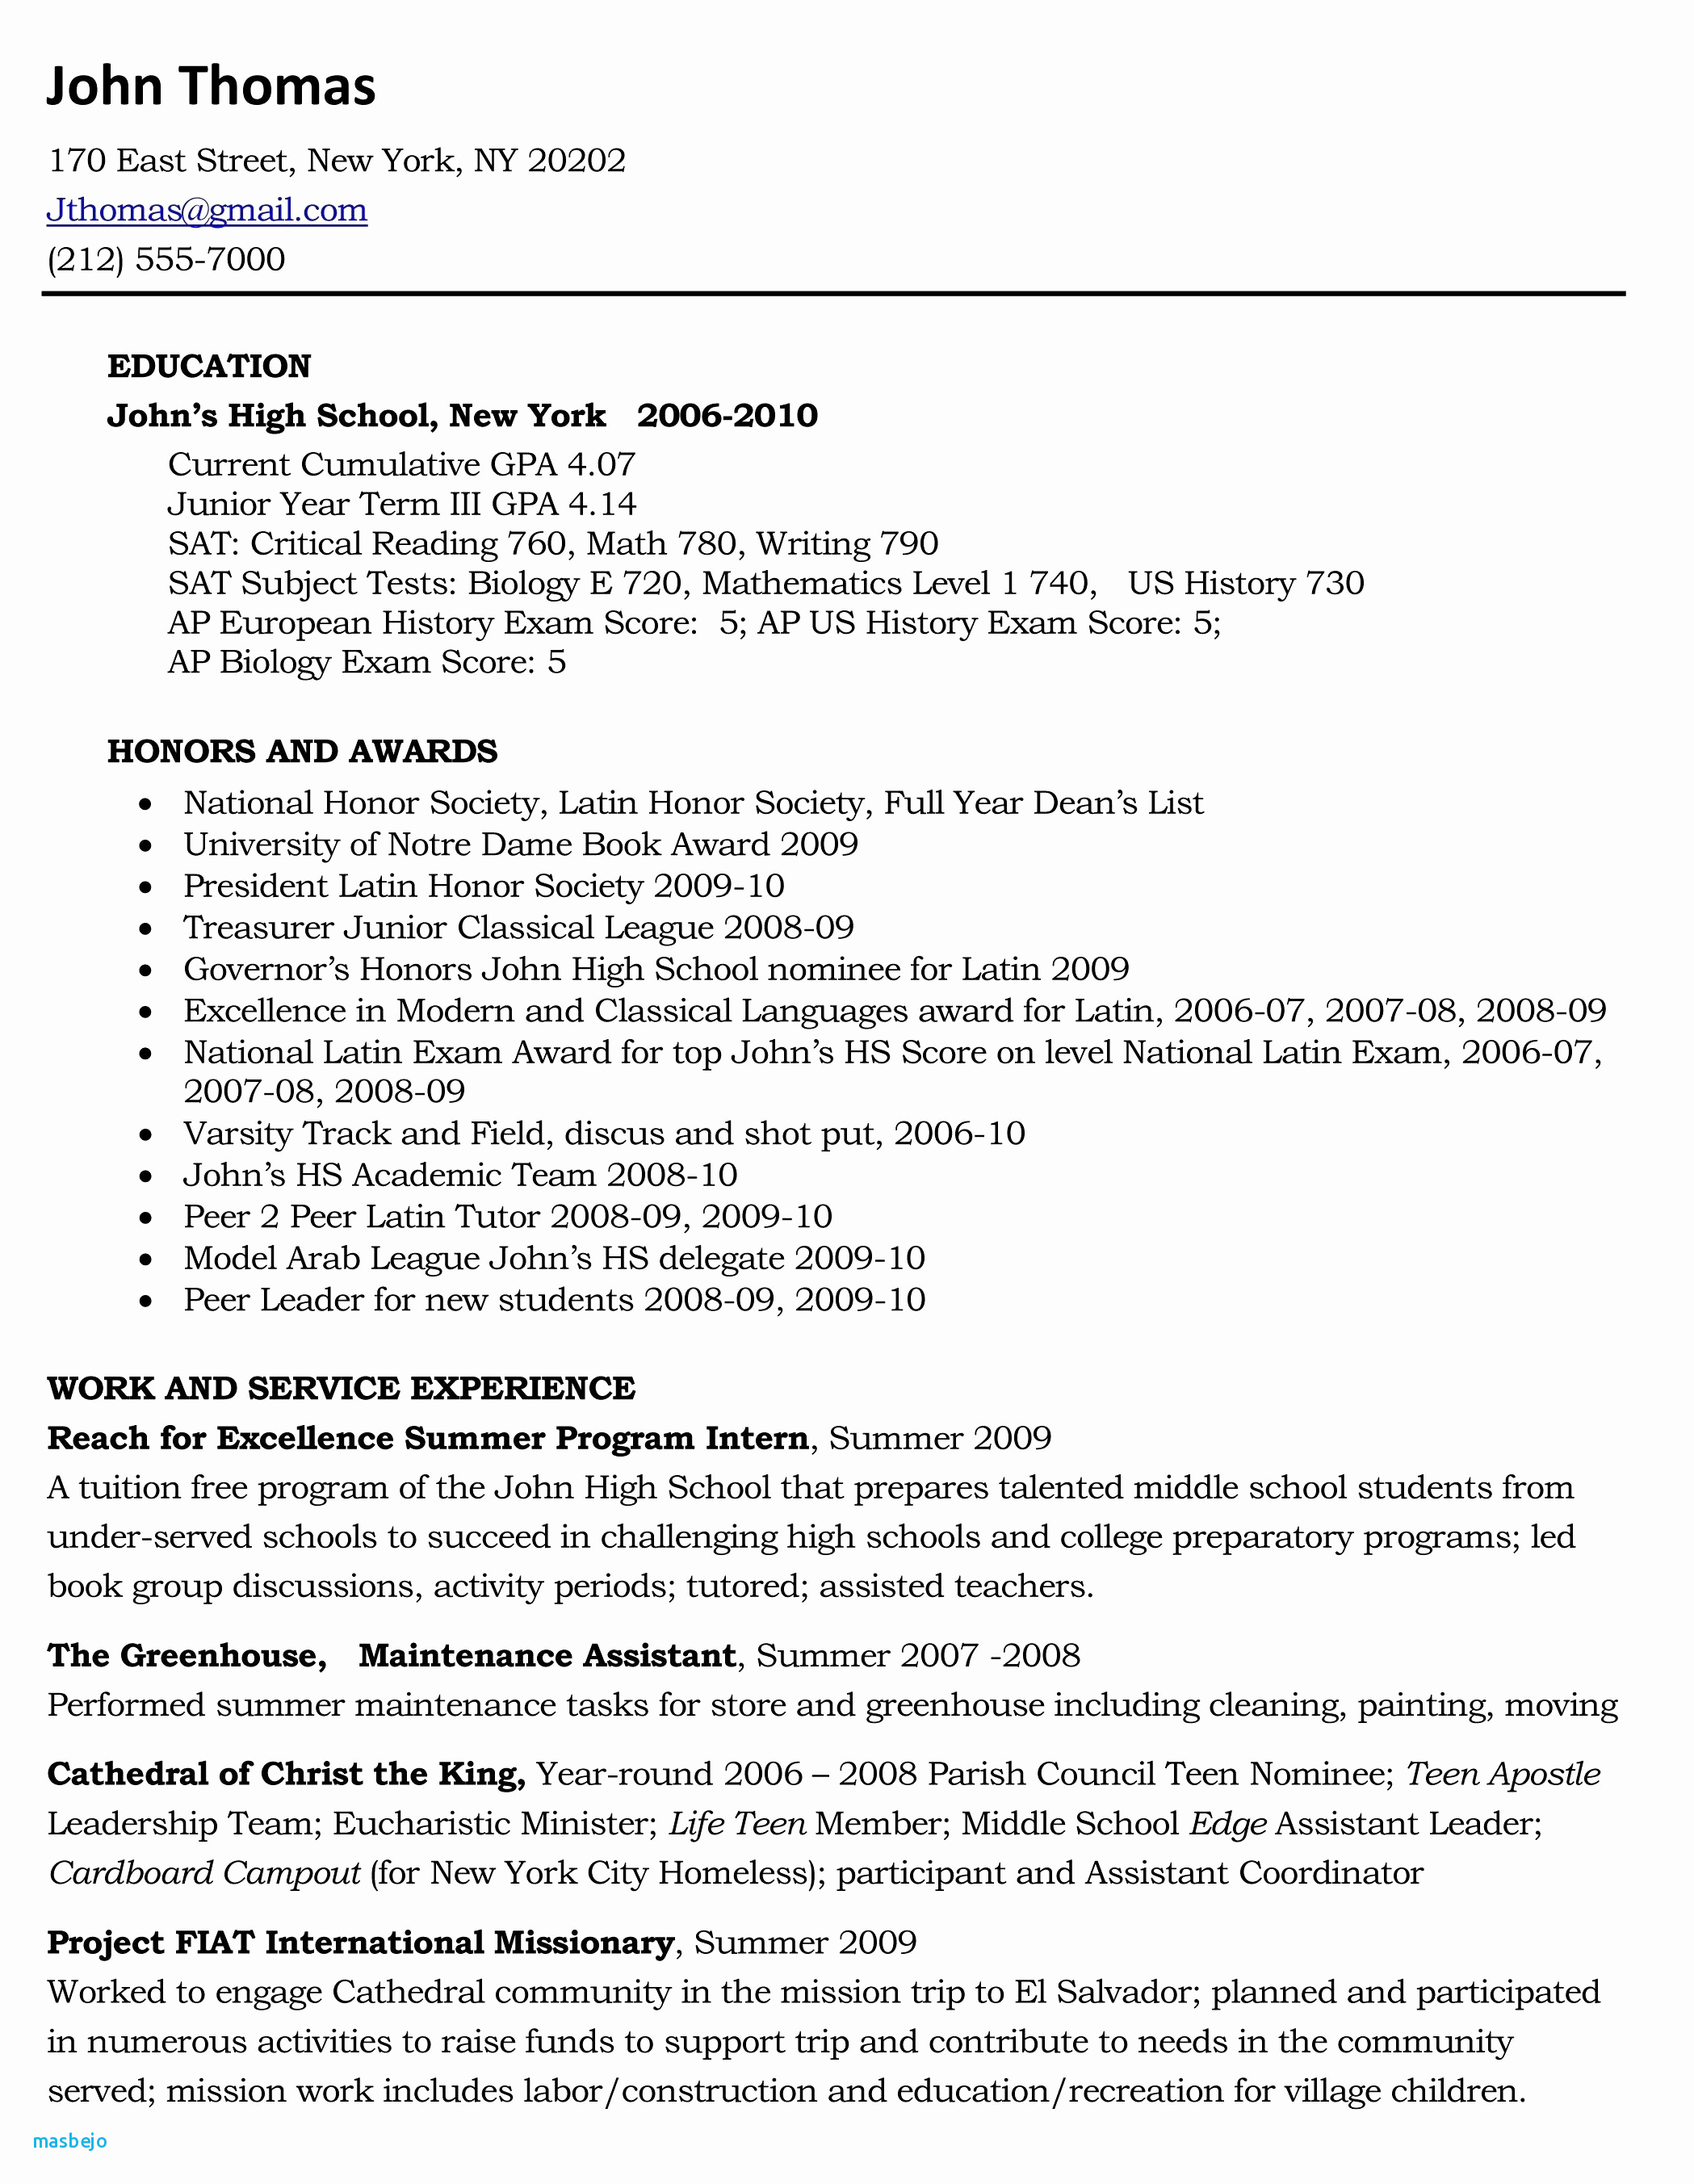 Need A Resume - Welding Certification School Example Welder Resume Welder Resume 0d